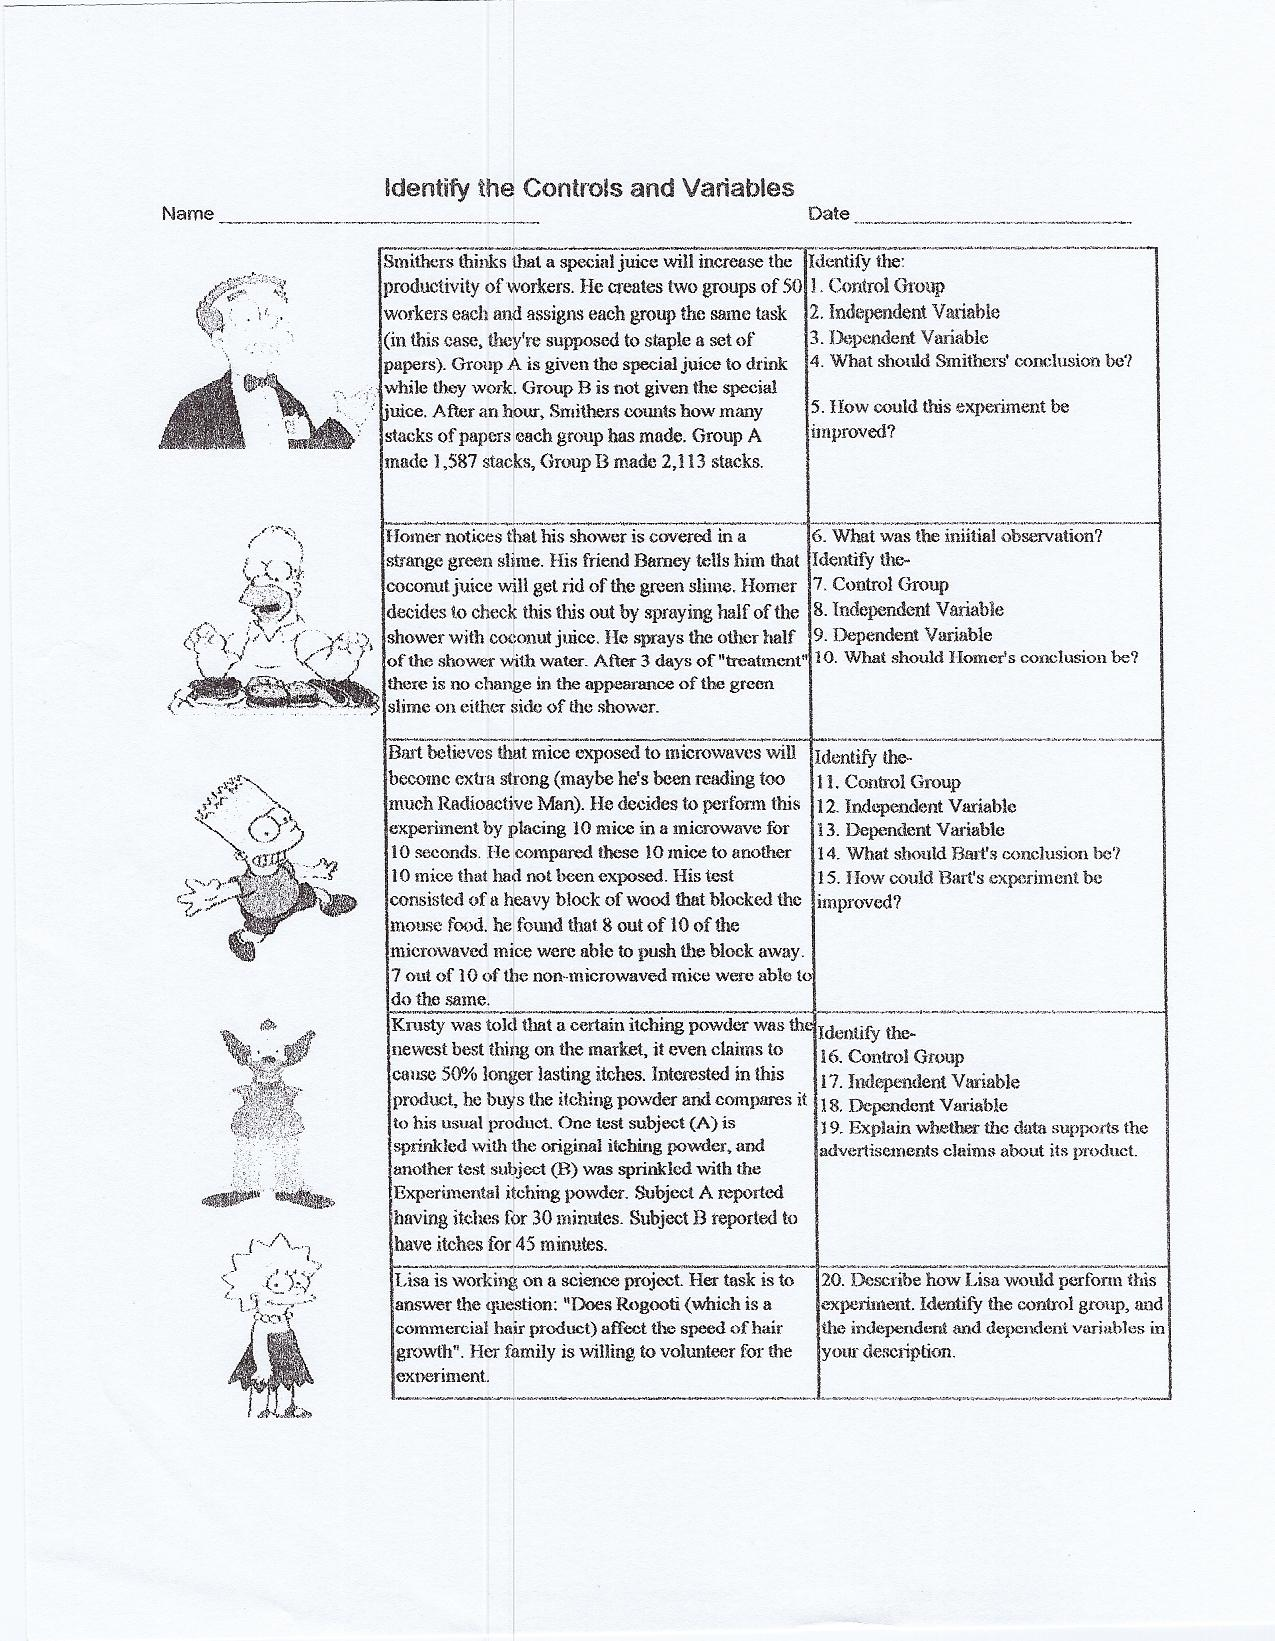 Worksheets Science And The Scientific Method Worksheet singhal seema biology 1 identify controls and variable 2 scientific method worksheet